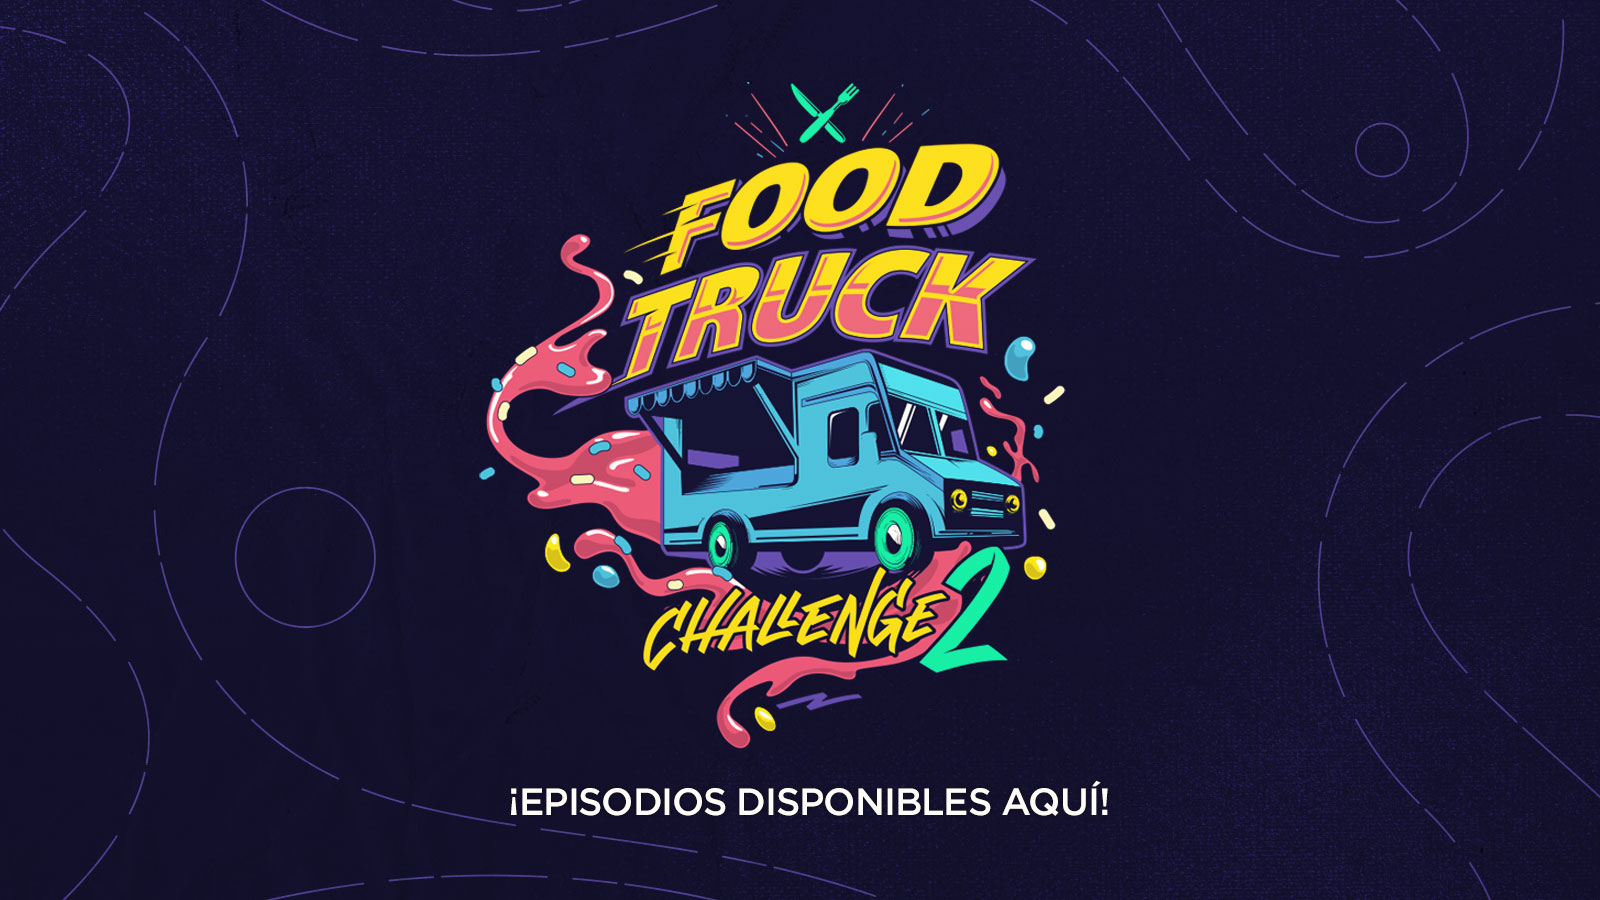 sony_ch_foodtruckchallenge_1600x900